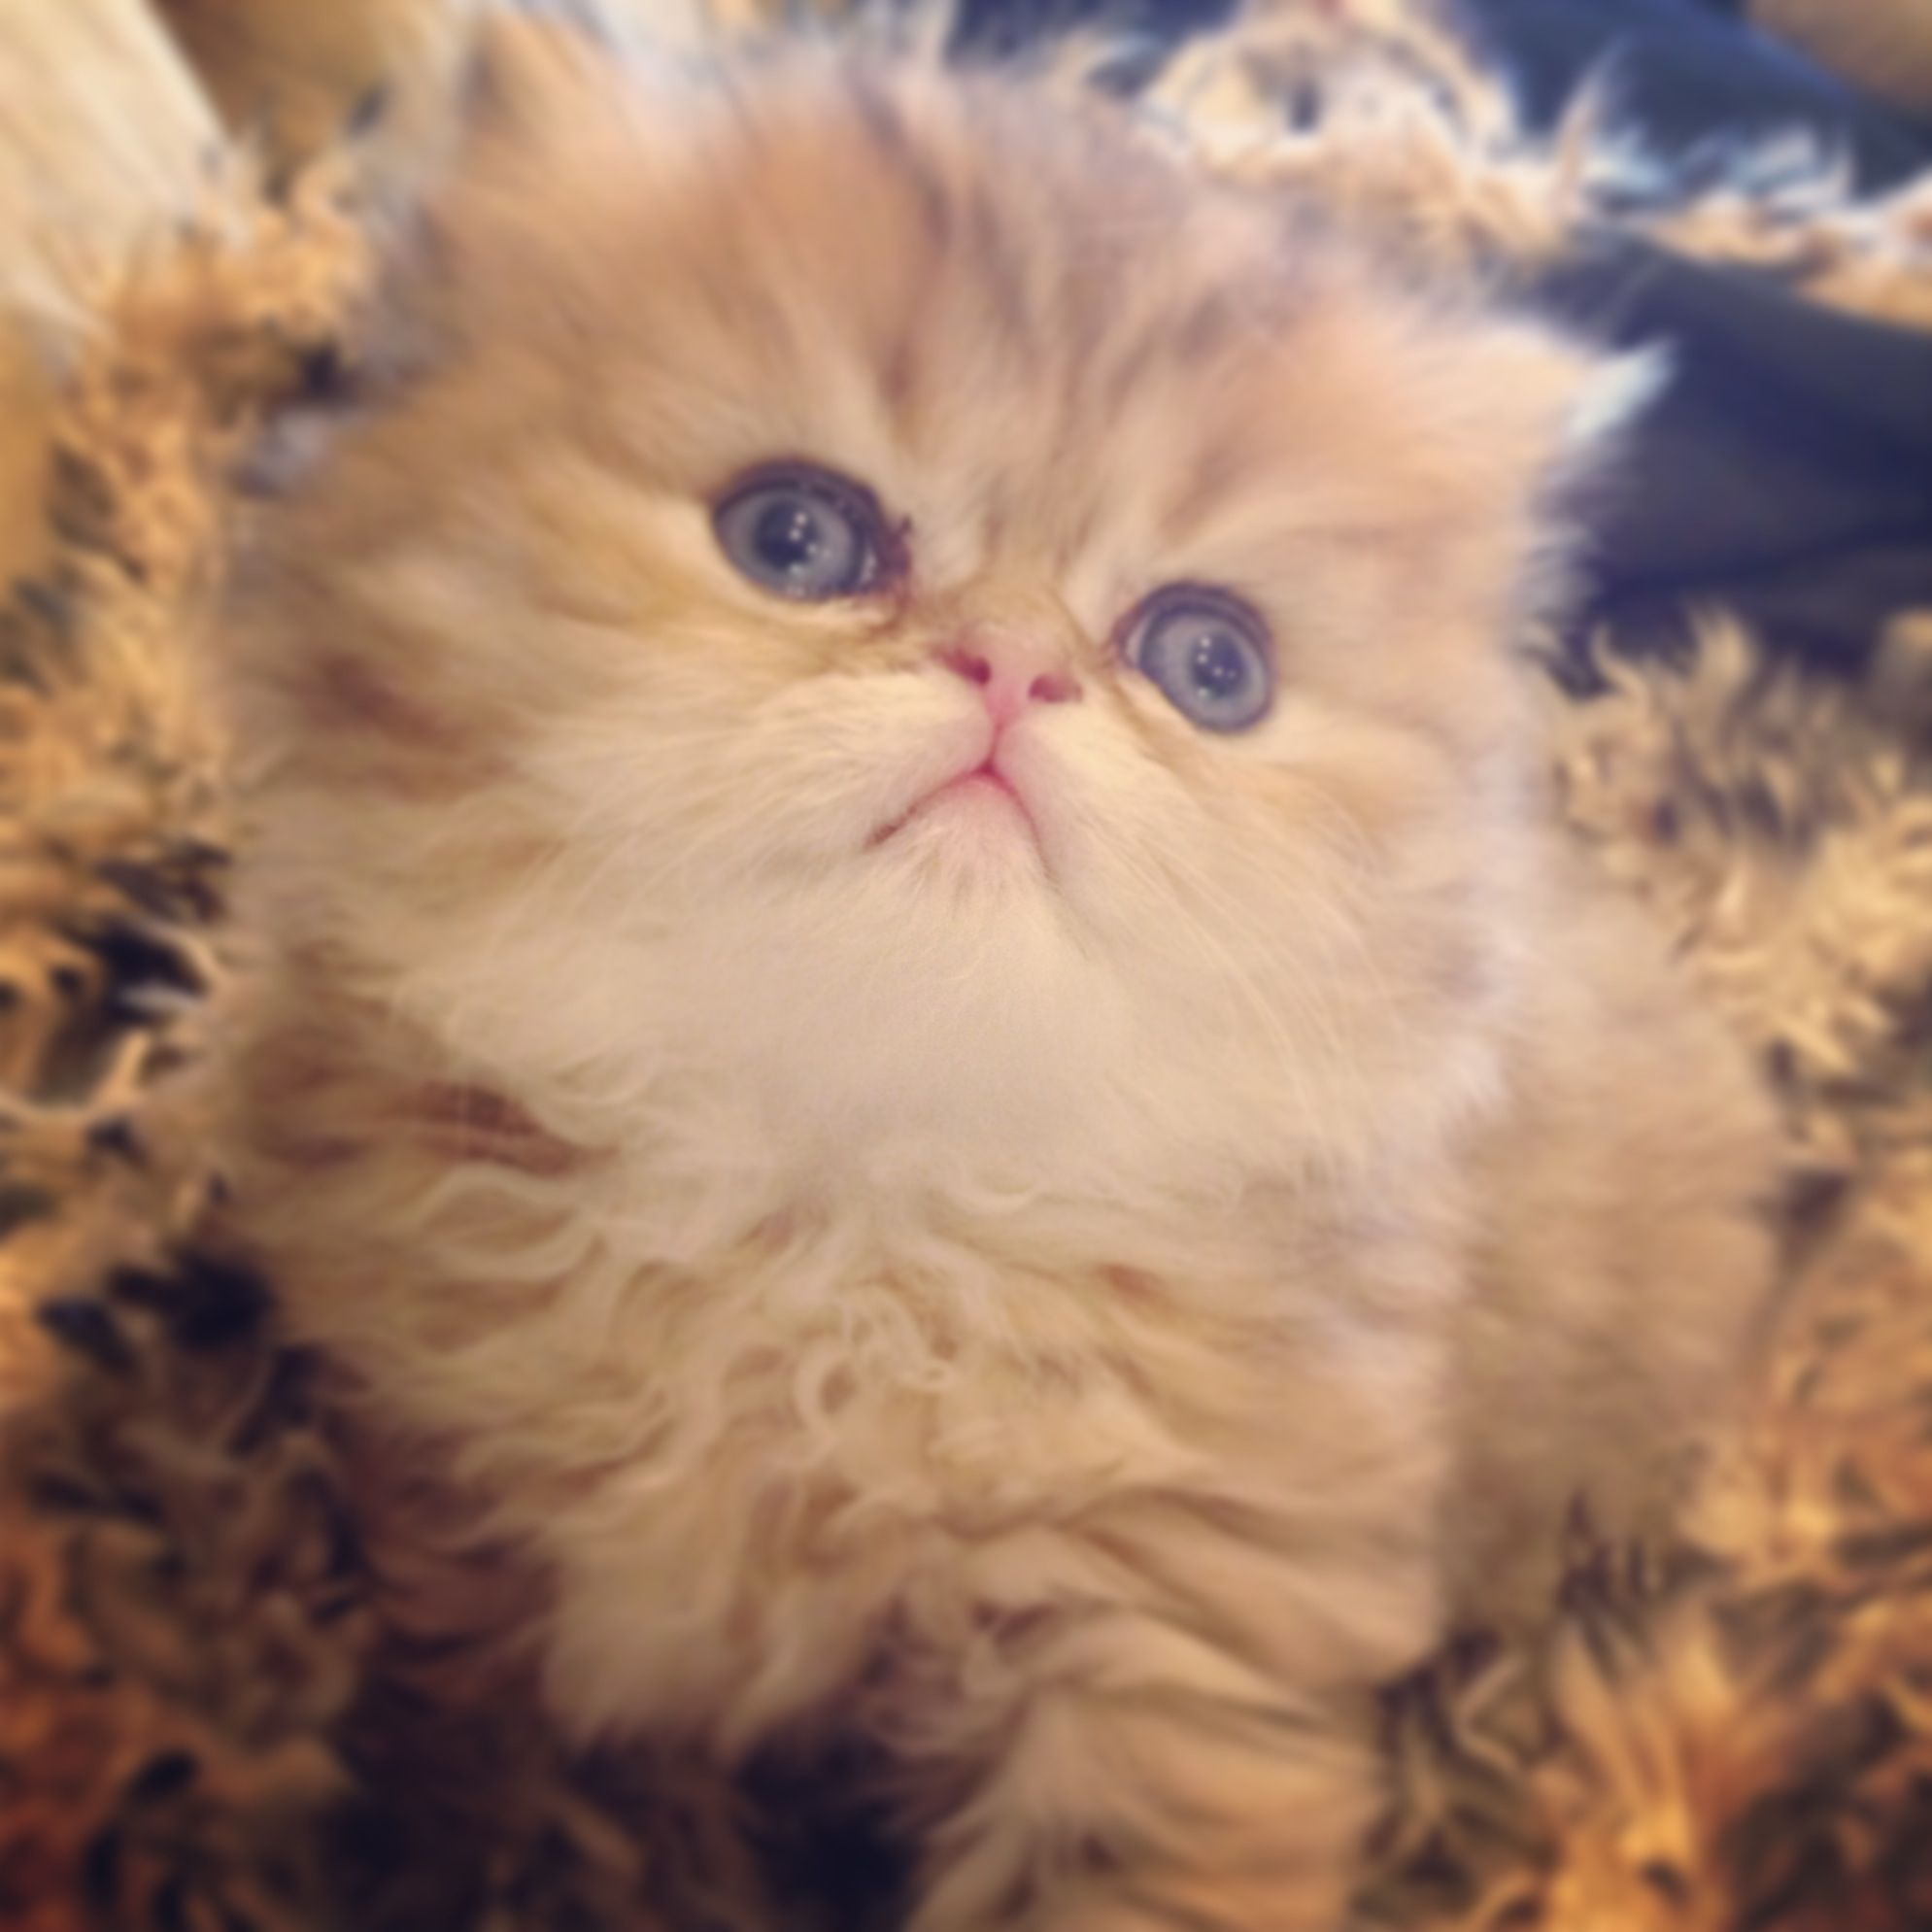 New Kittens Available Teacup Size Golden Silver Chinchilla Shaded With Green Eyes 813 409 84 Cute Cats And Dogs Persian Kittens For Sale Persian Kittens